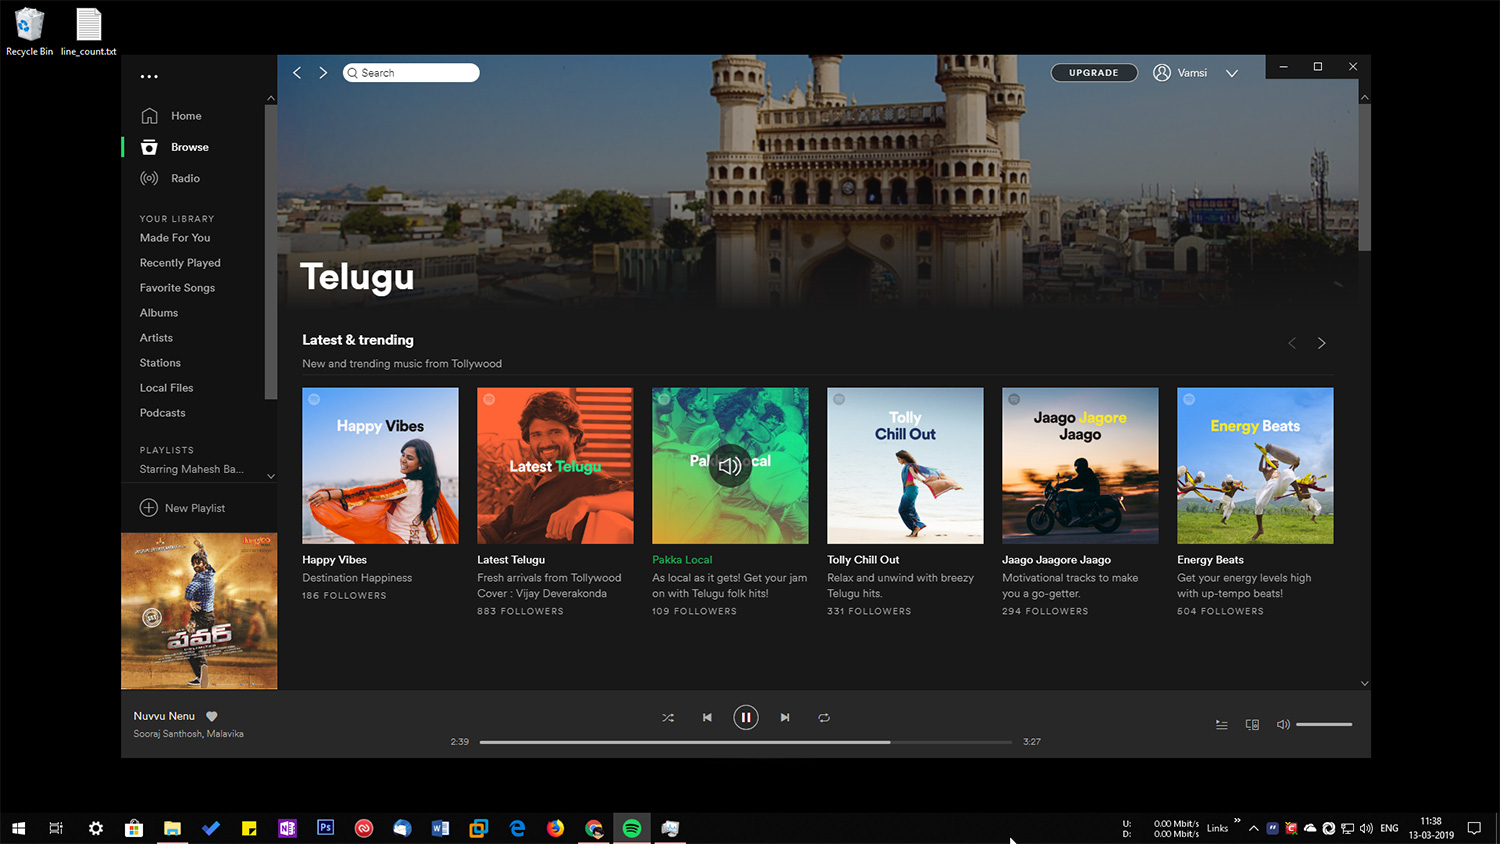 How to Stop Spotify from Opening on System Startup in Windows 10